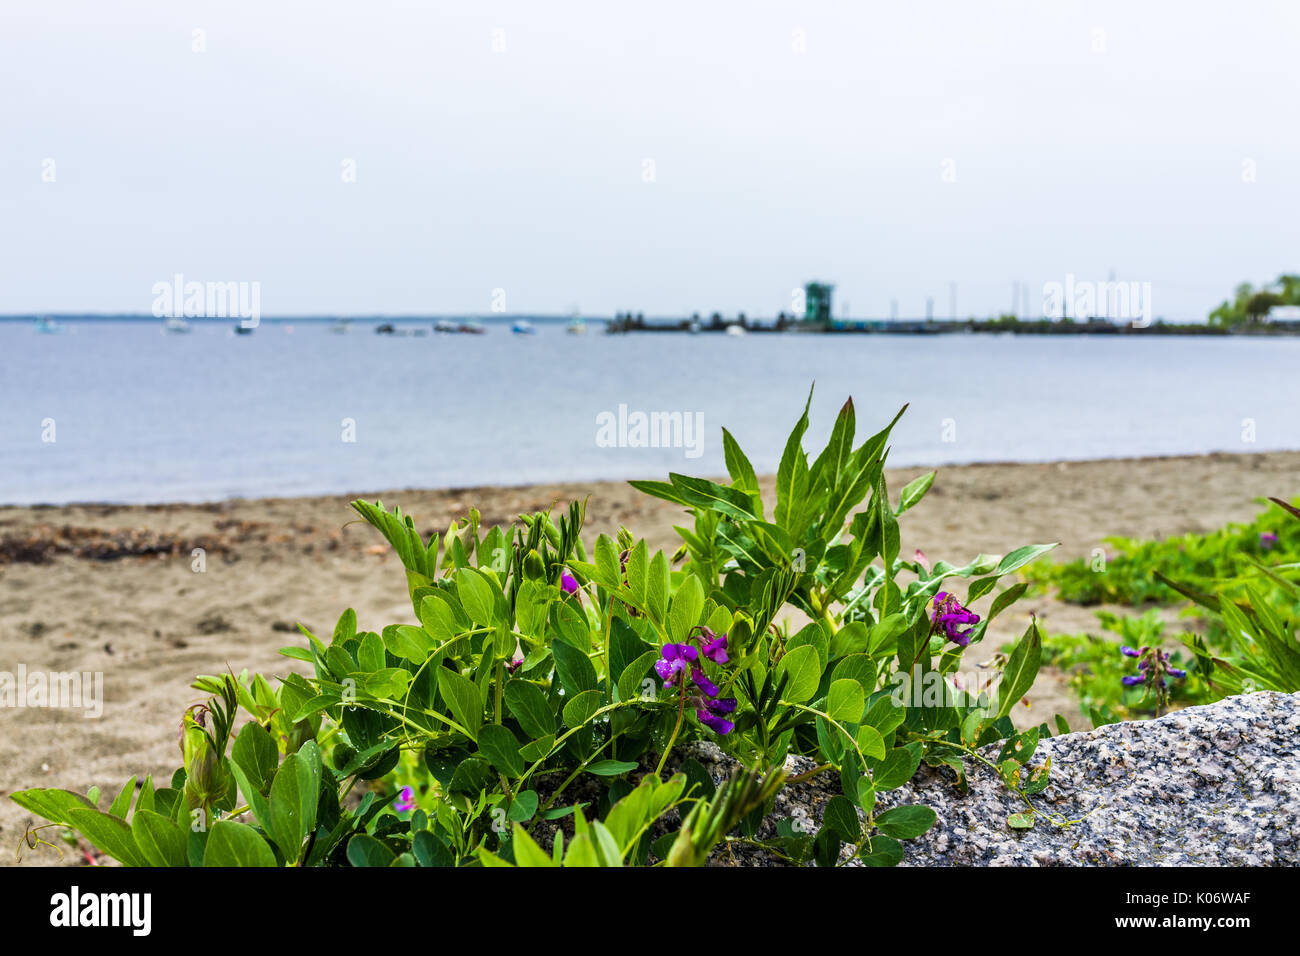 Marina harbor boats in the distance in Lincolnville, Maine small village during rain and beach with purple flowers Stock Photo